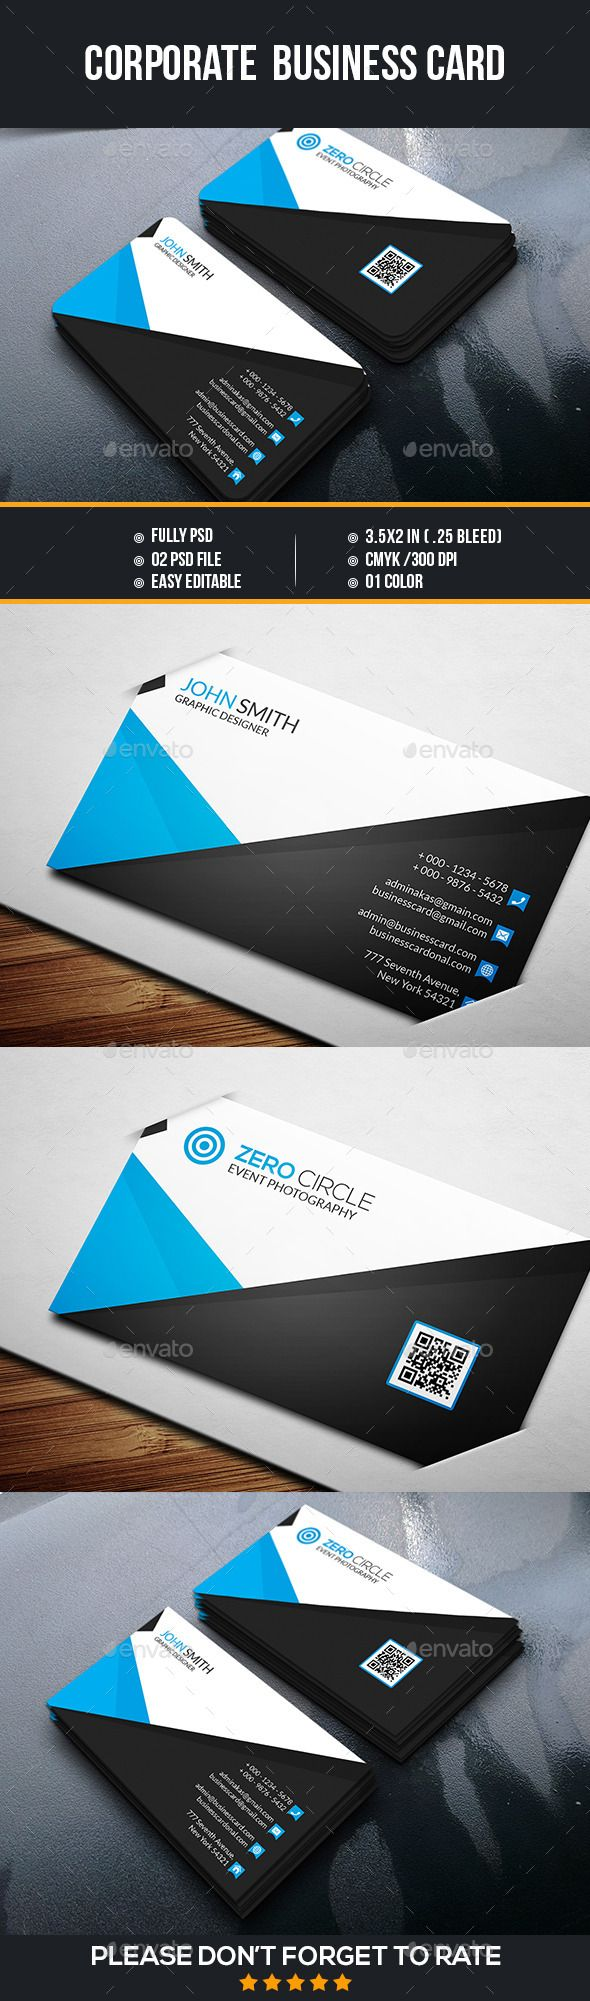 Corporate Business Card Template #design Download: http://graphicriver.net/item/corporate-business-card/12788724?ref=ksioks